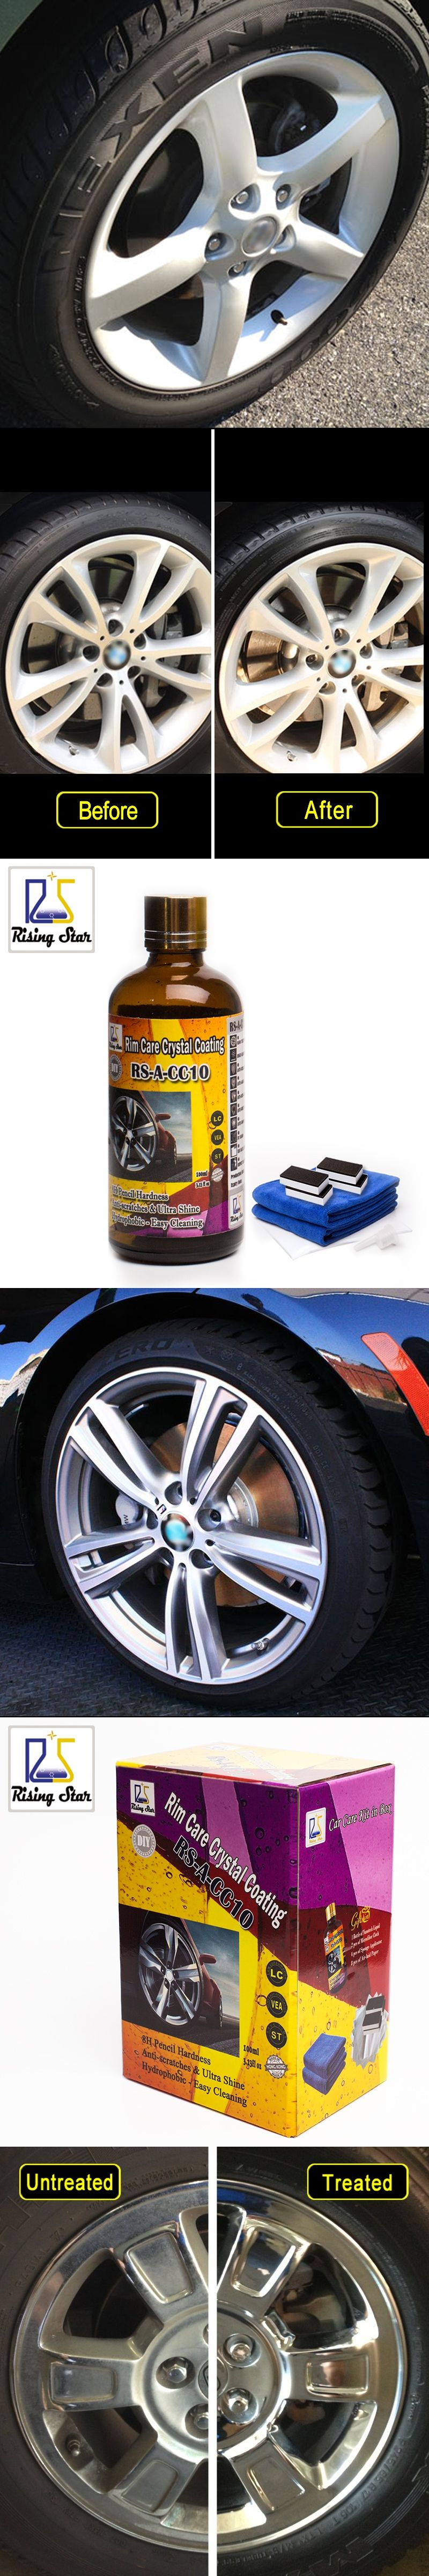 Rising Star Liquid Glass Nano Ceramic Car Rim Care Coating Hydrophobic  Crystal Wheel Coating Kits For DIY Users